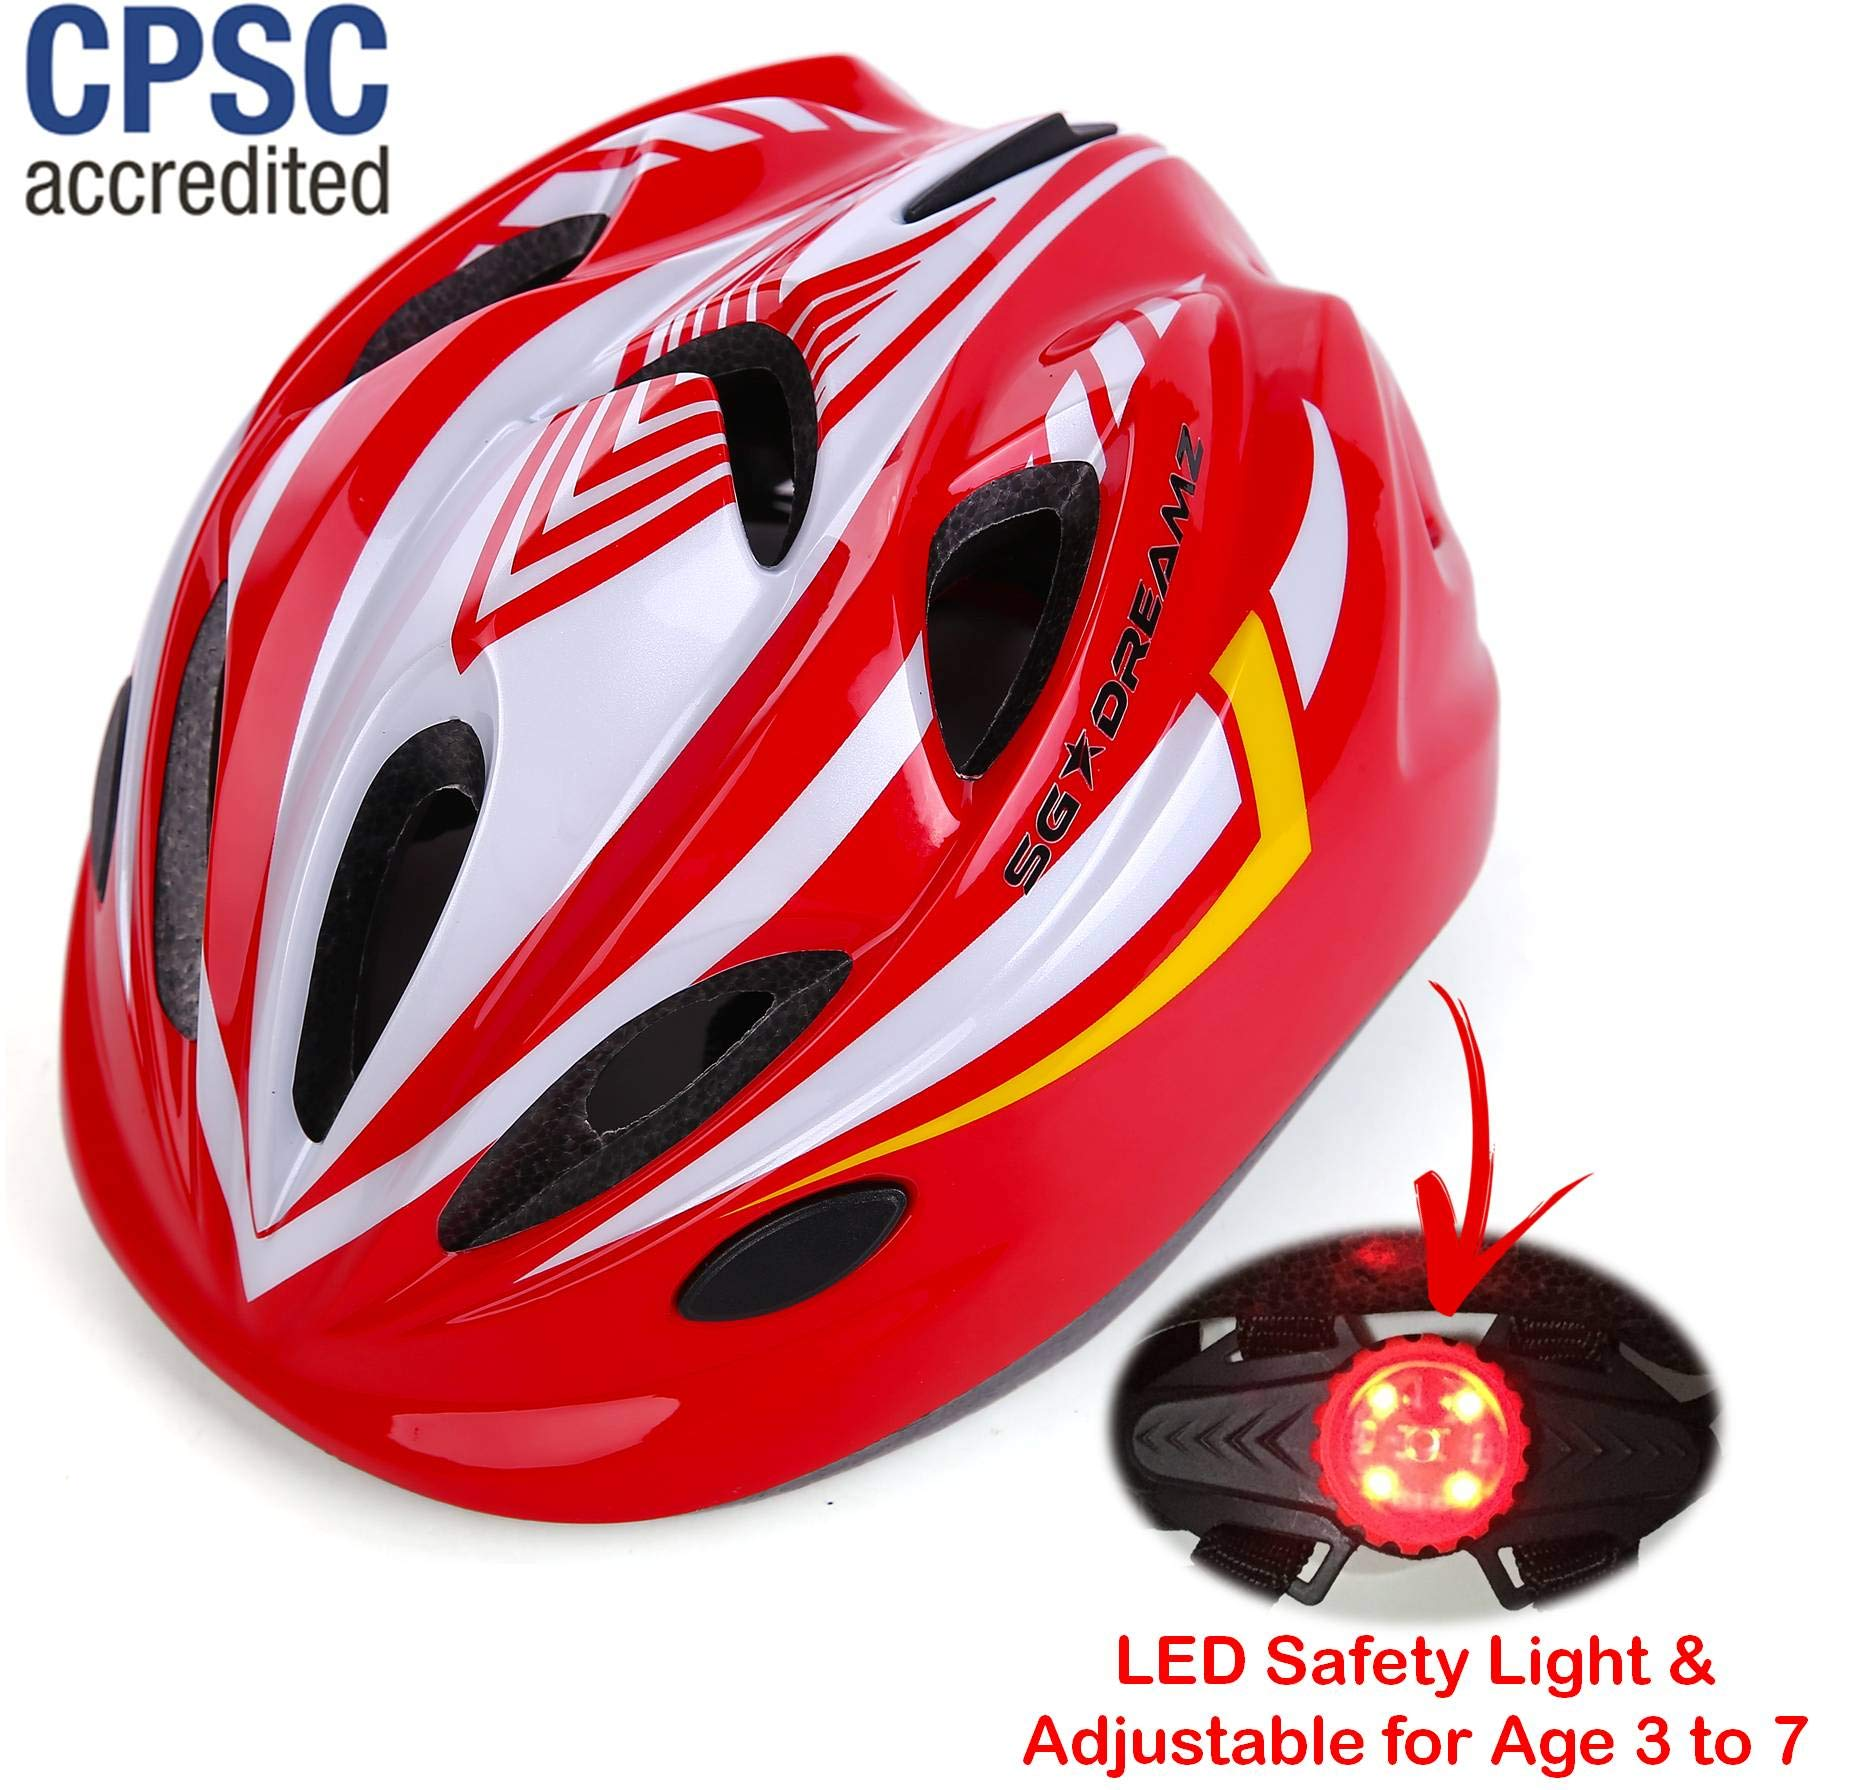 Kids Bike Helmet – Adjustable from Toddler to Youth Size, Ages 3 To 7 - Durable Kid Bicycle Helmets with Fun Racing Design Boys and Girls will LOVE - CSPC Certified for Safety (White Red With Light)